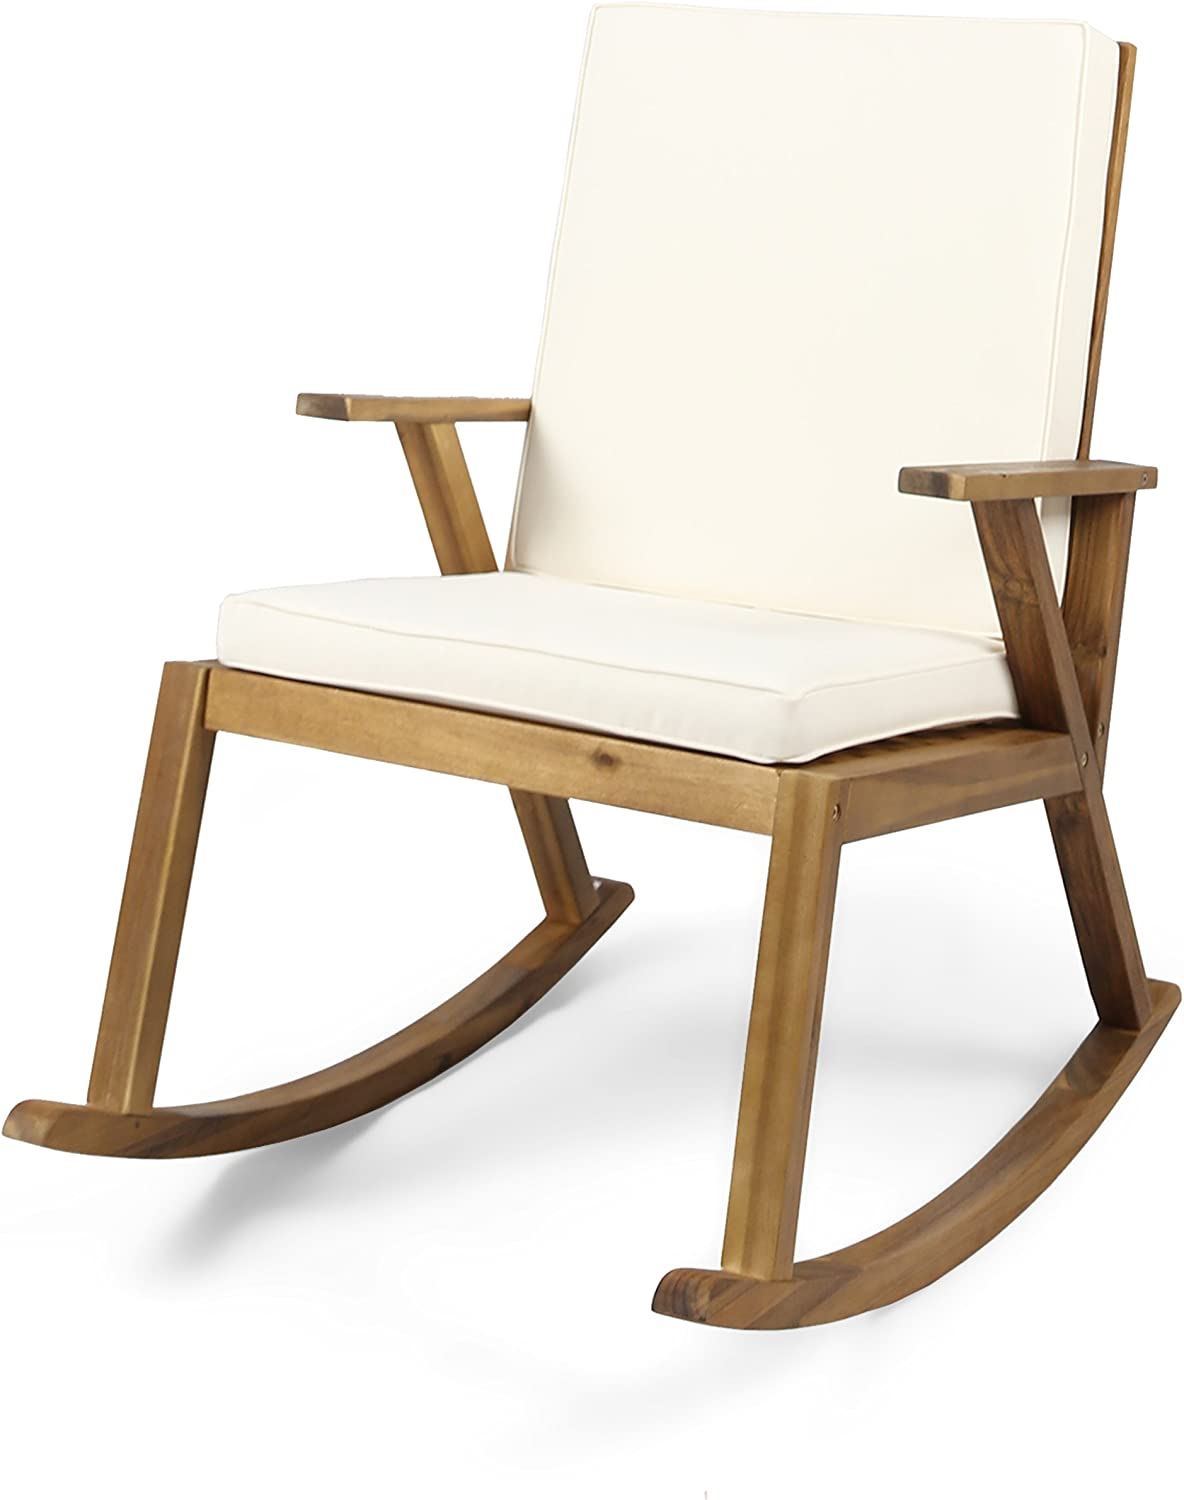 Christopher Knight Home 304650 Brent | Outdoor Acacia Wood Rocking Chair, Teak Finish/Cream Cushion